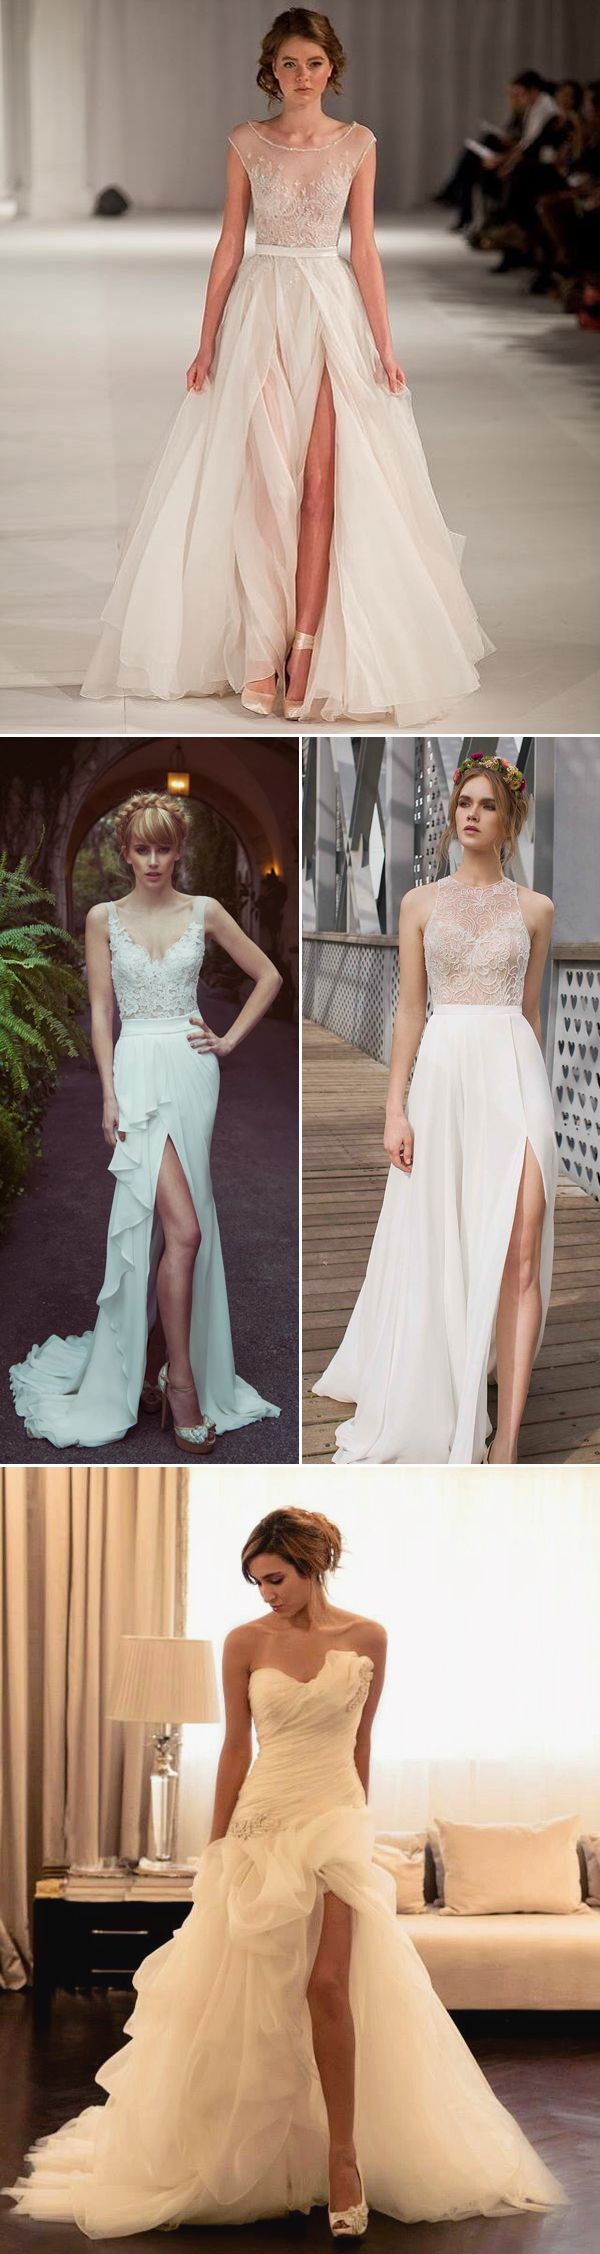 Sweet-Feminine-Beach-High-Slit-Wedding-Gowns-2016.jpg (600×2254)